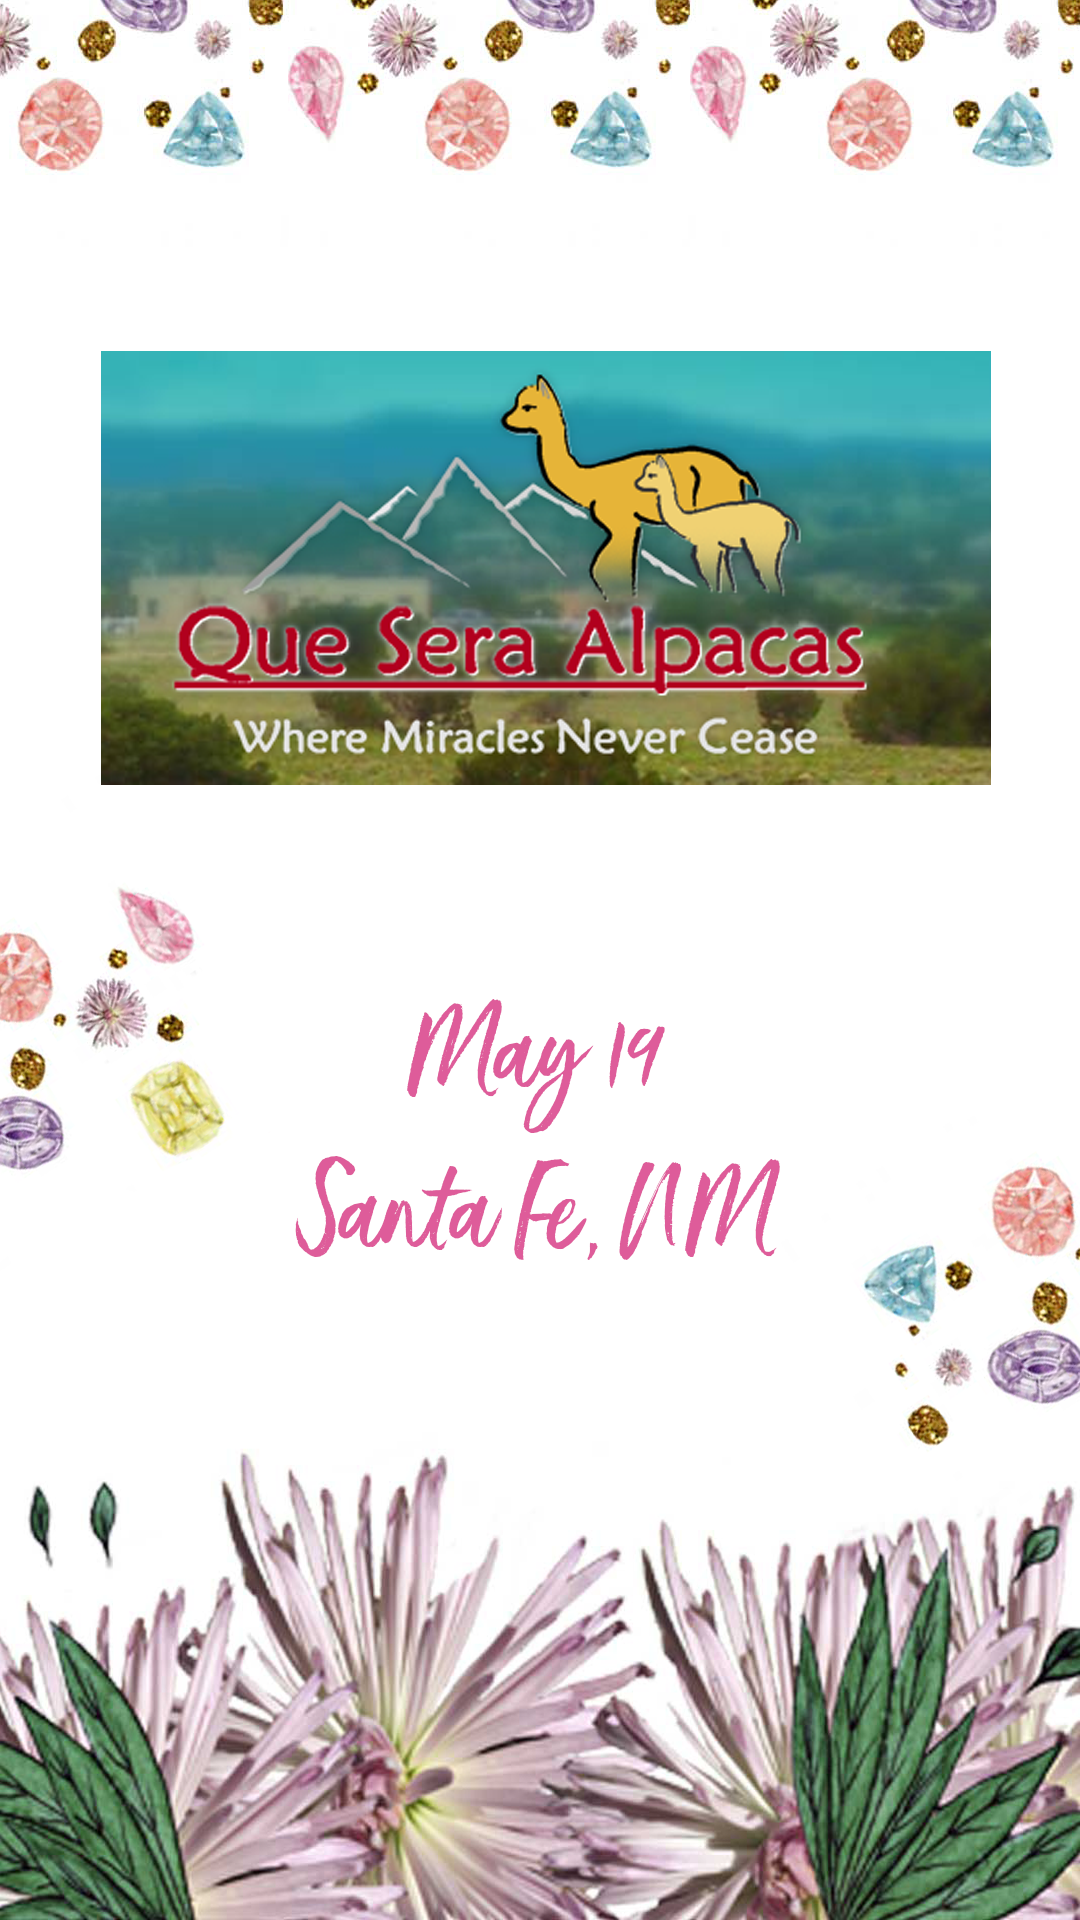 Book Signing at Que Sera Alpaca Ranch Santa Fe, NM